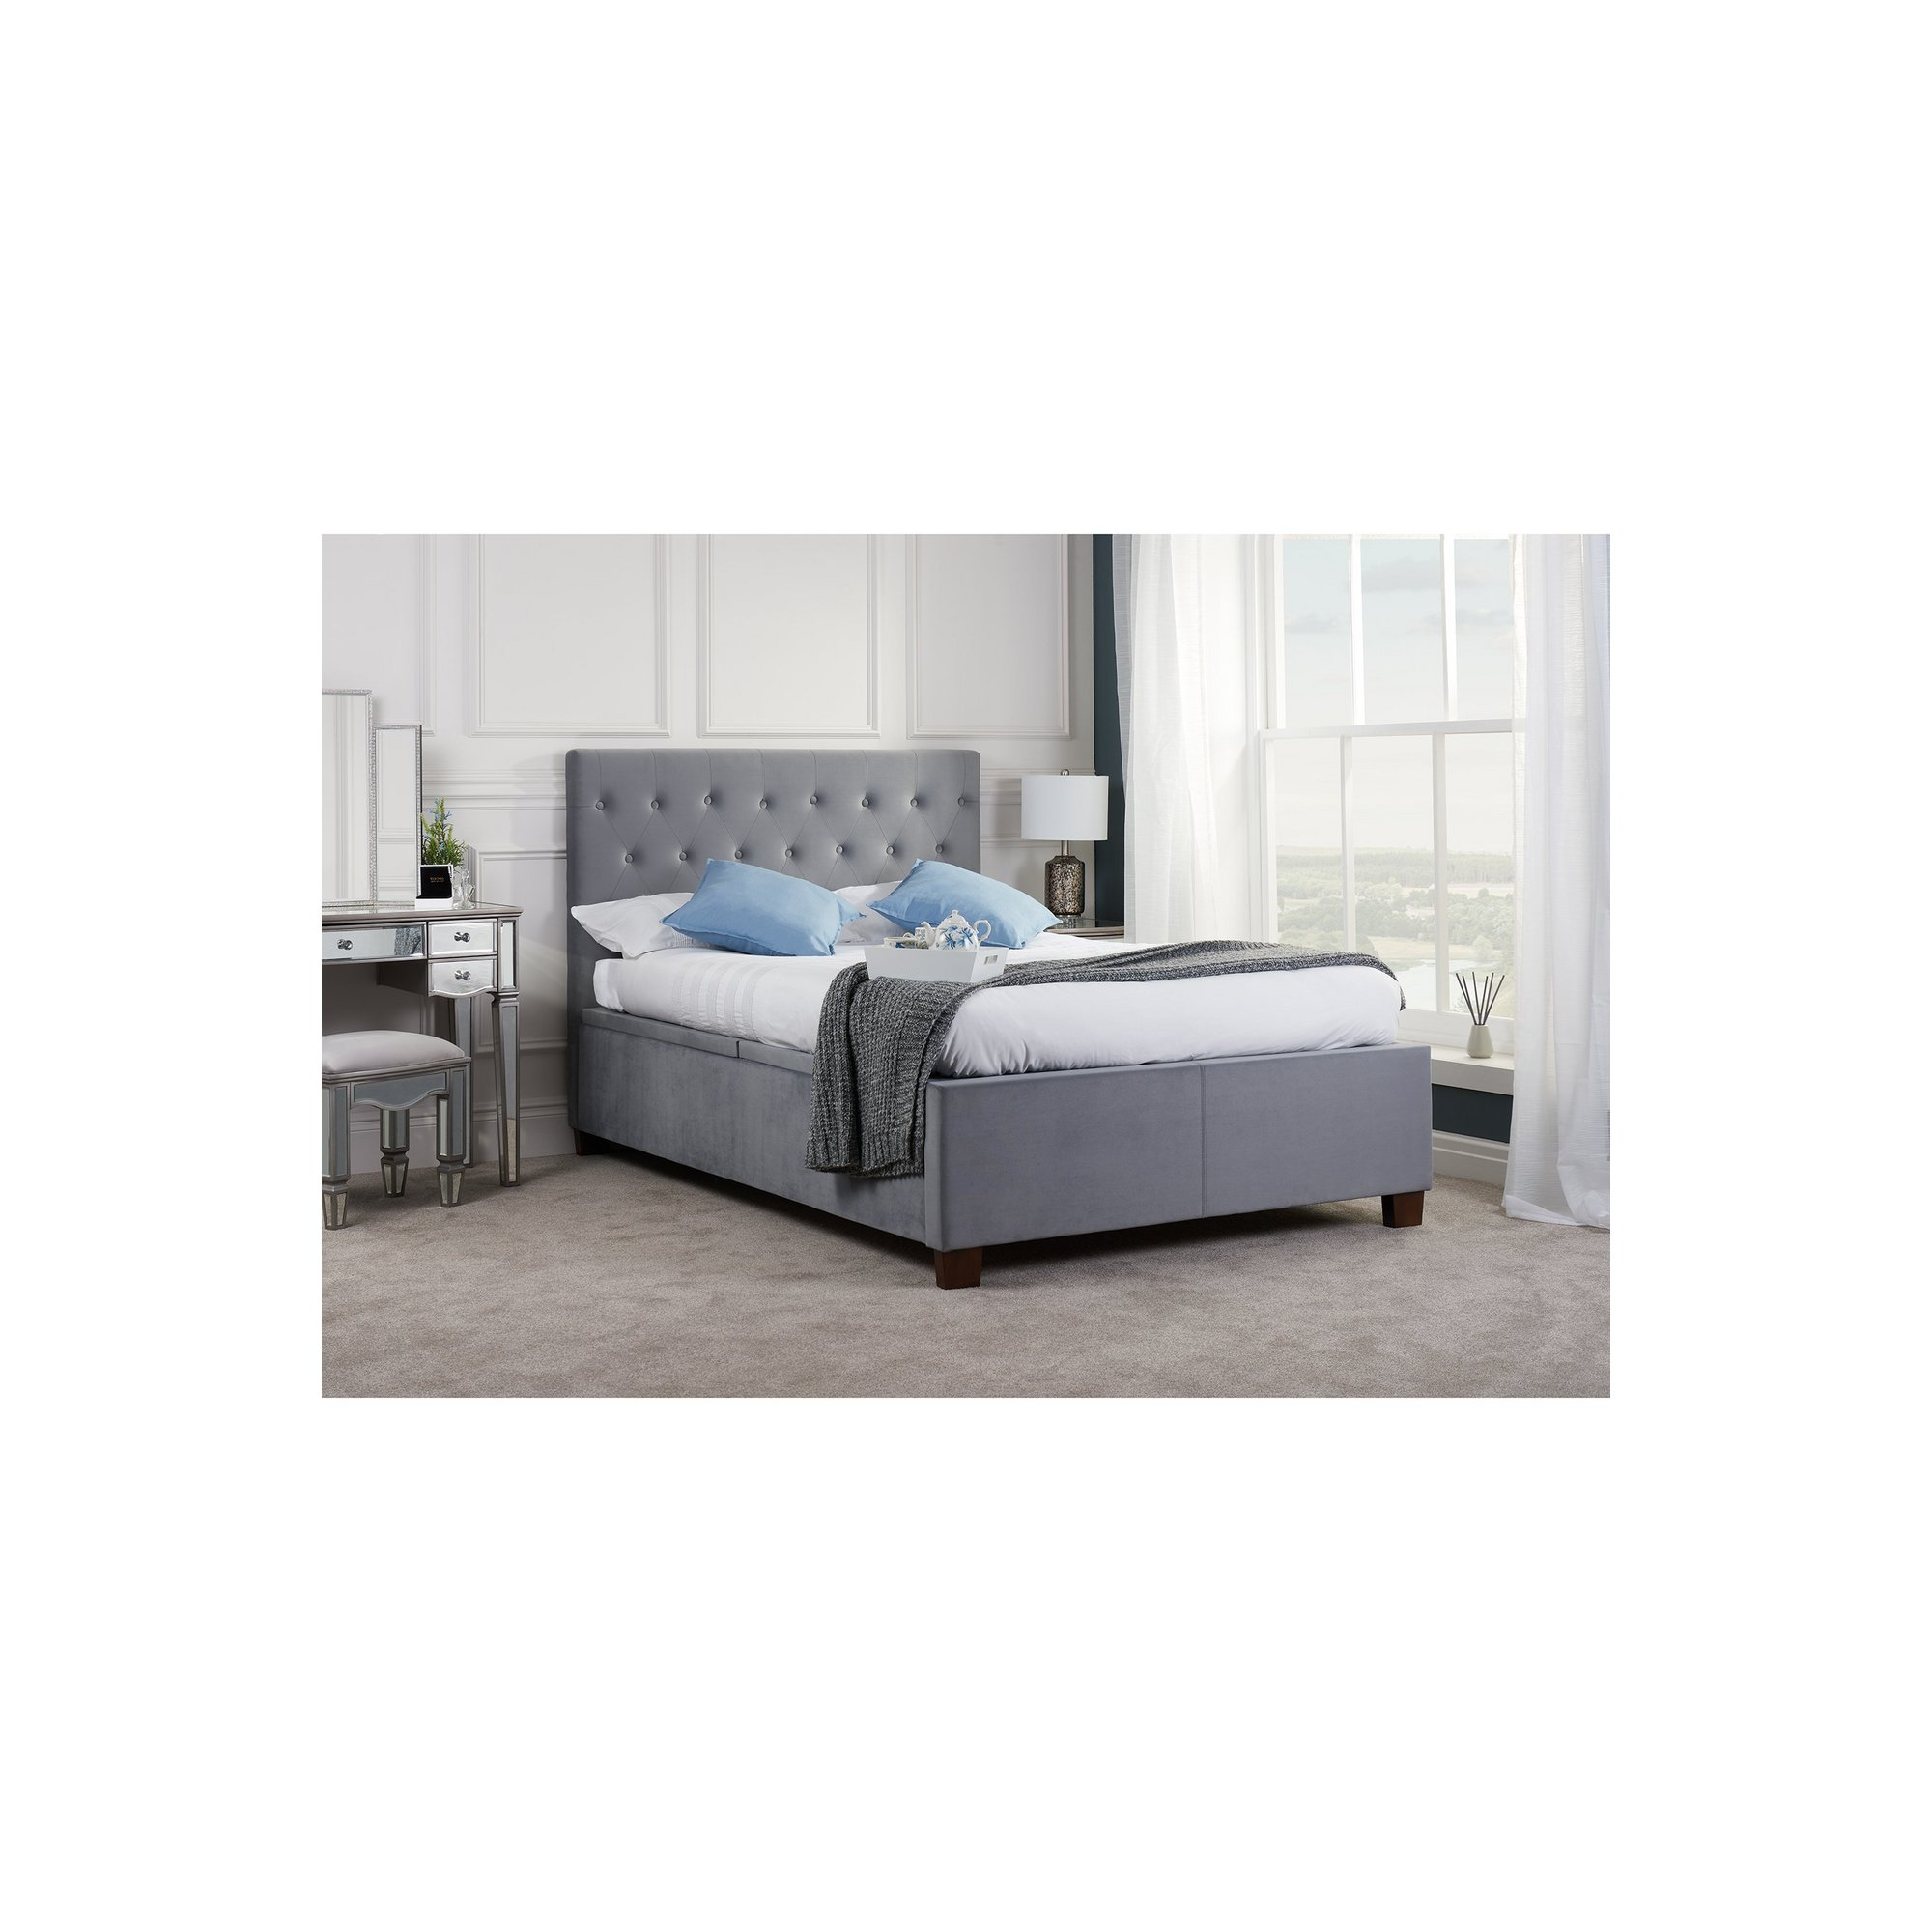 Image of Cologne Ottoman Bed